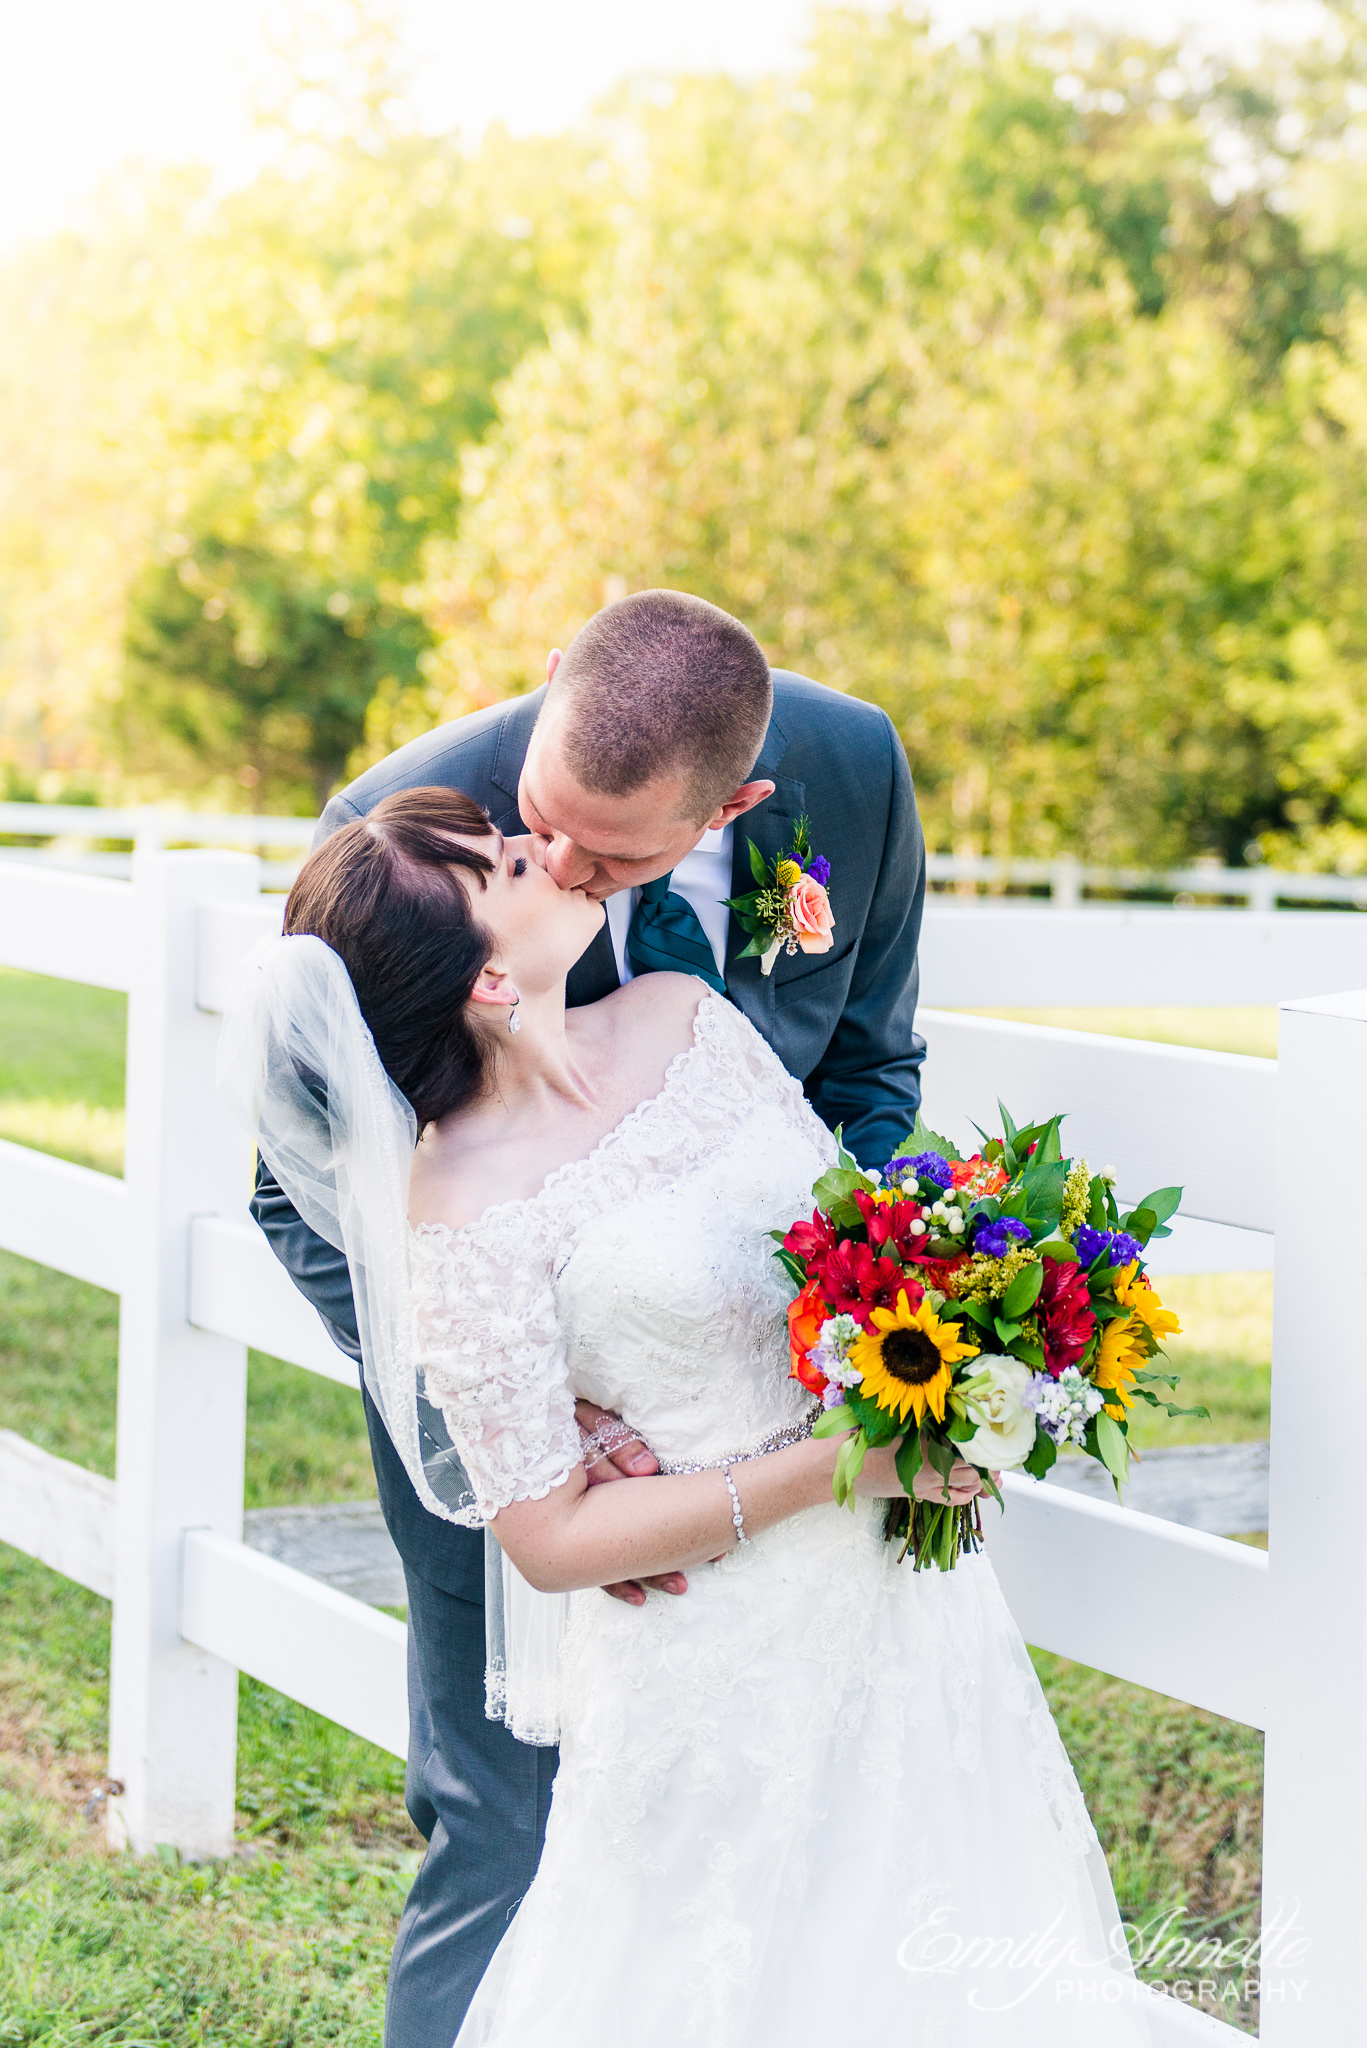 A bride and groom share a kiss next to a white fence during a country wedding at Amber Grove near Richmond, Virginia